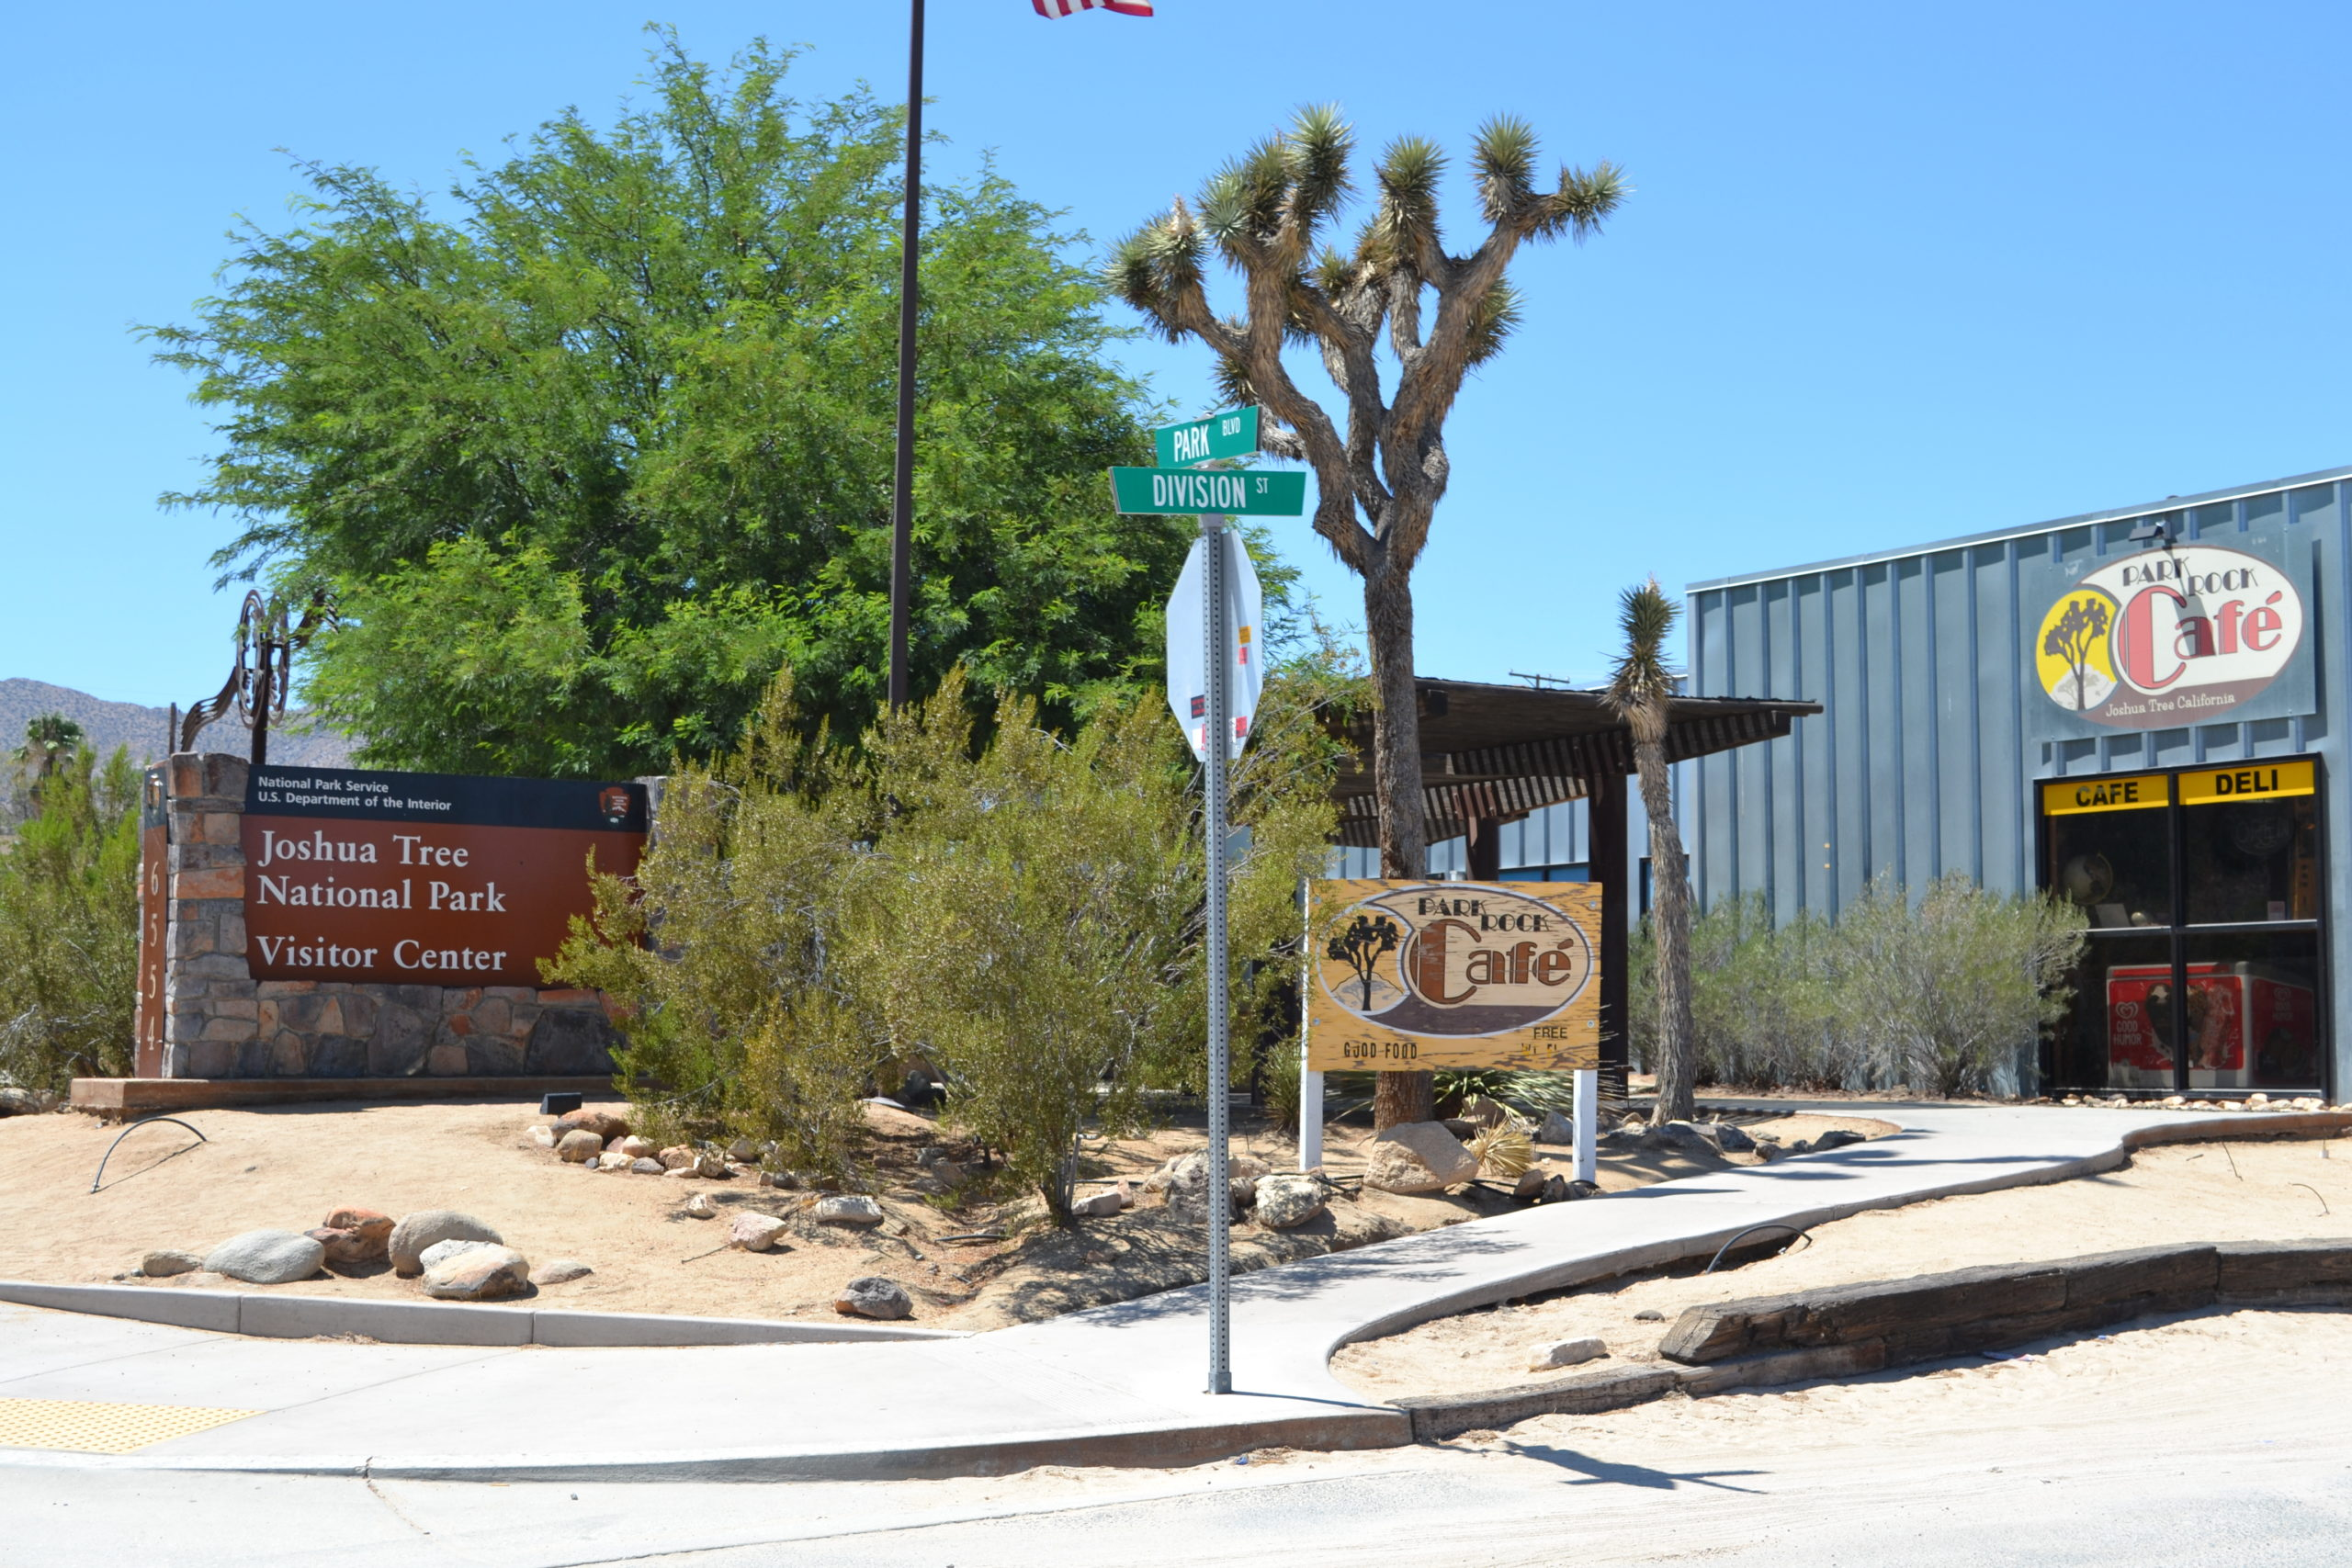 Joshua-Tree-National-Park Visitor-Center-Park-Boulevard-Hiking-Camping-Tour-Adventure-Visitor-Center